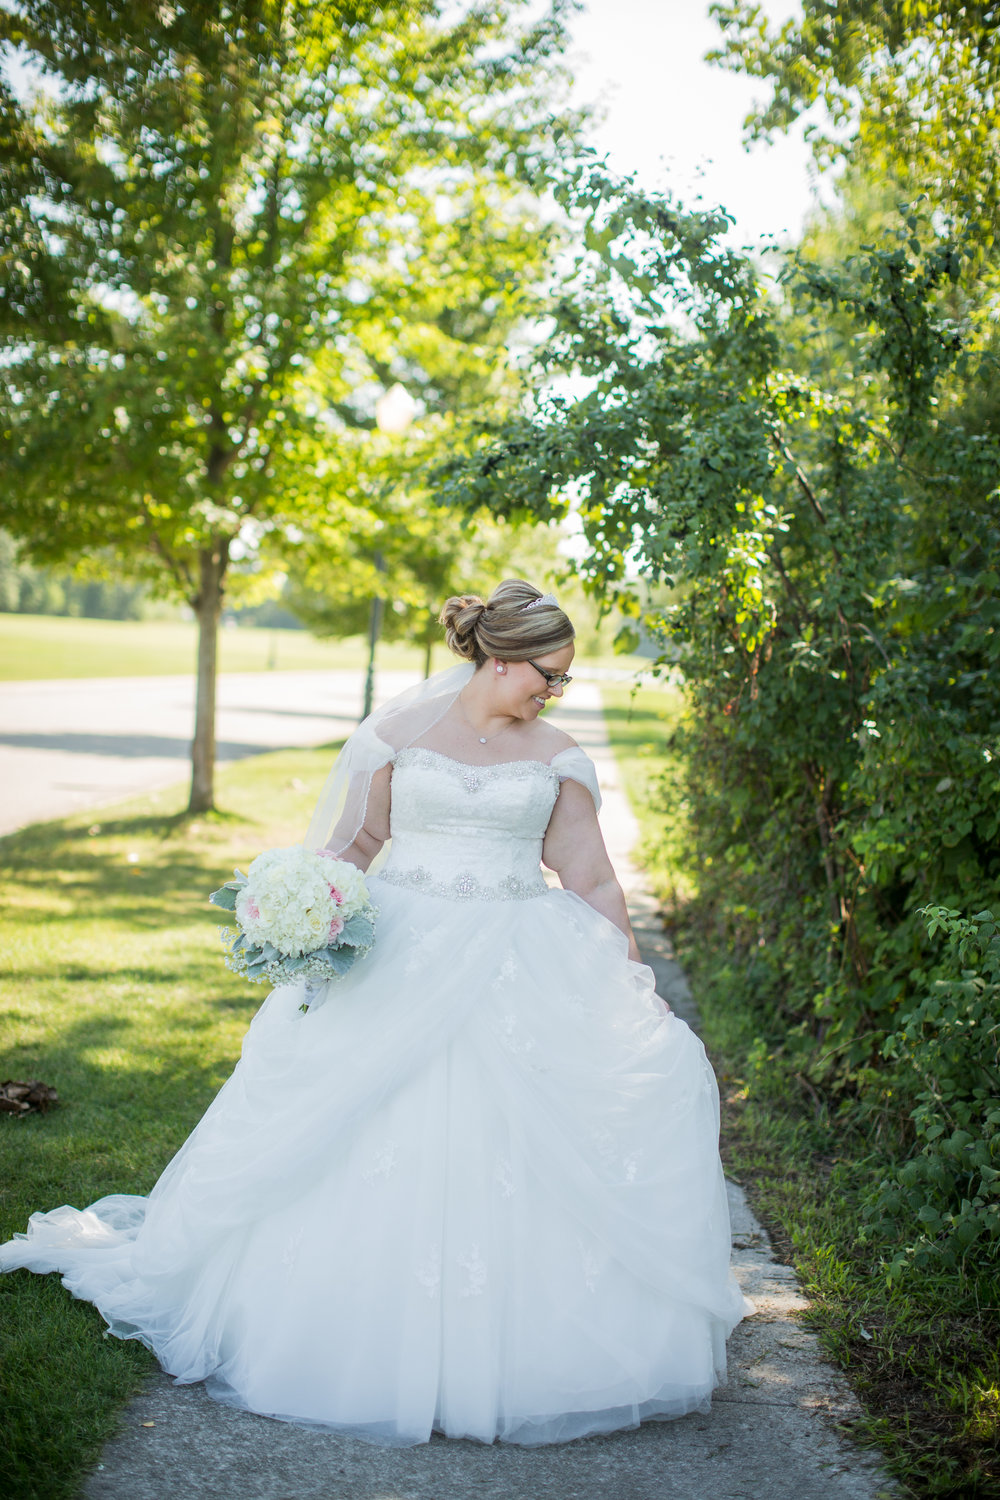 plus-size-bride-on-wedding-day-kayes-photography